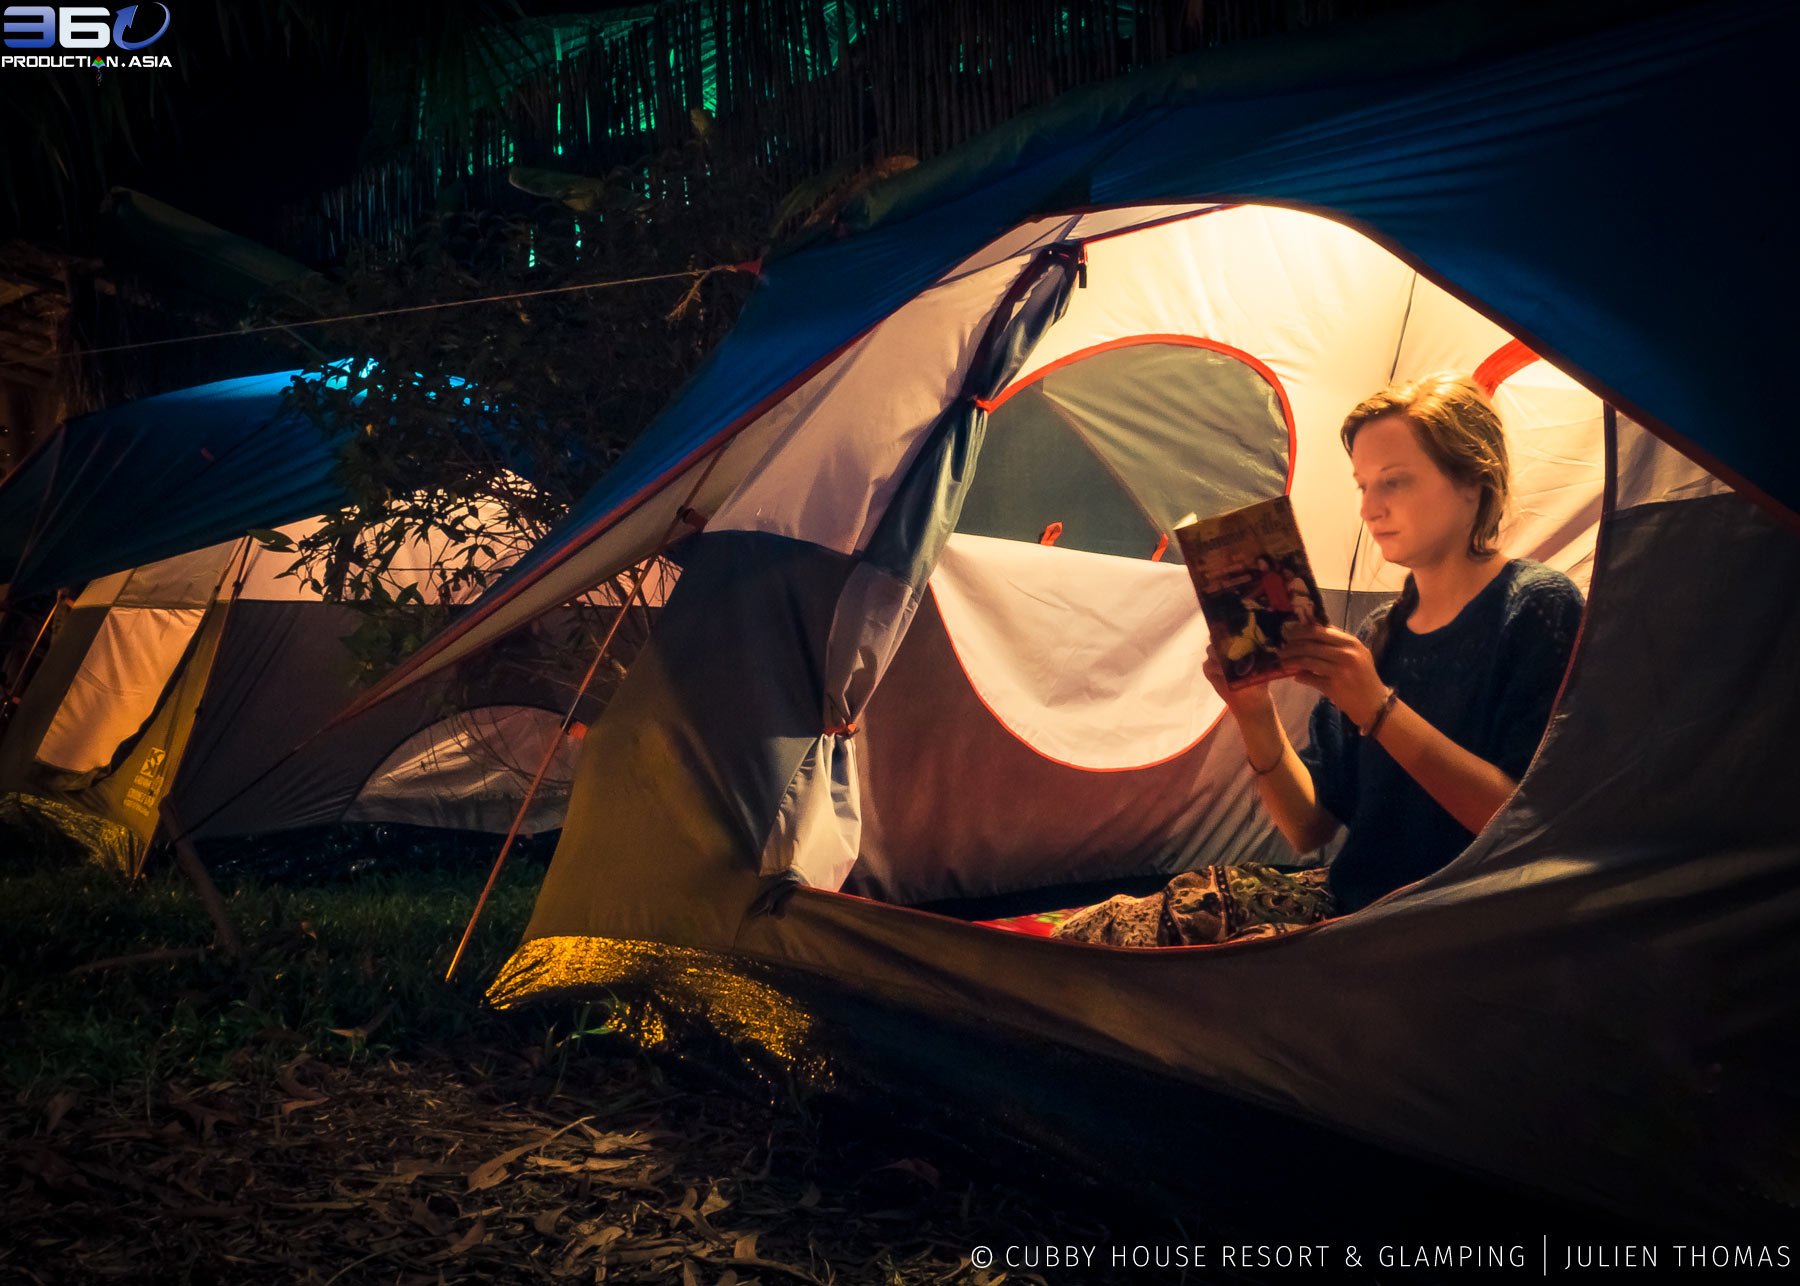 Cubby House Resort & Glamping in Otres Village Cambodia, still-photograph for business marketing and promotional needs by Julien Thomas, 360° Production Asia